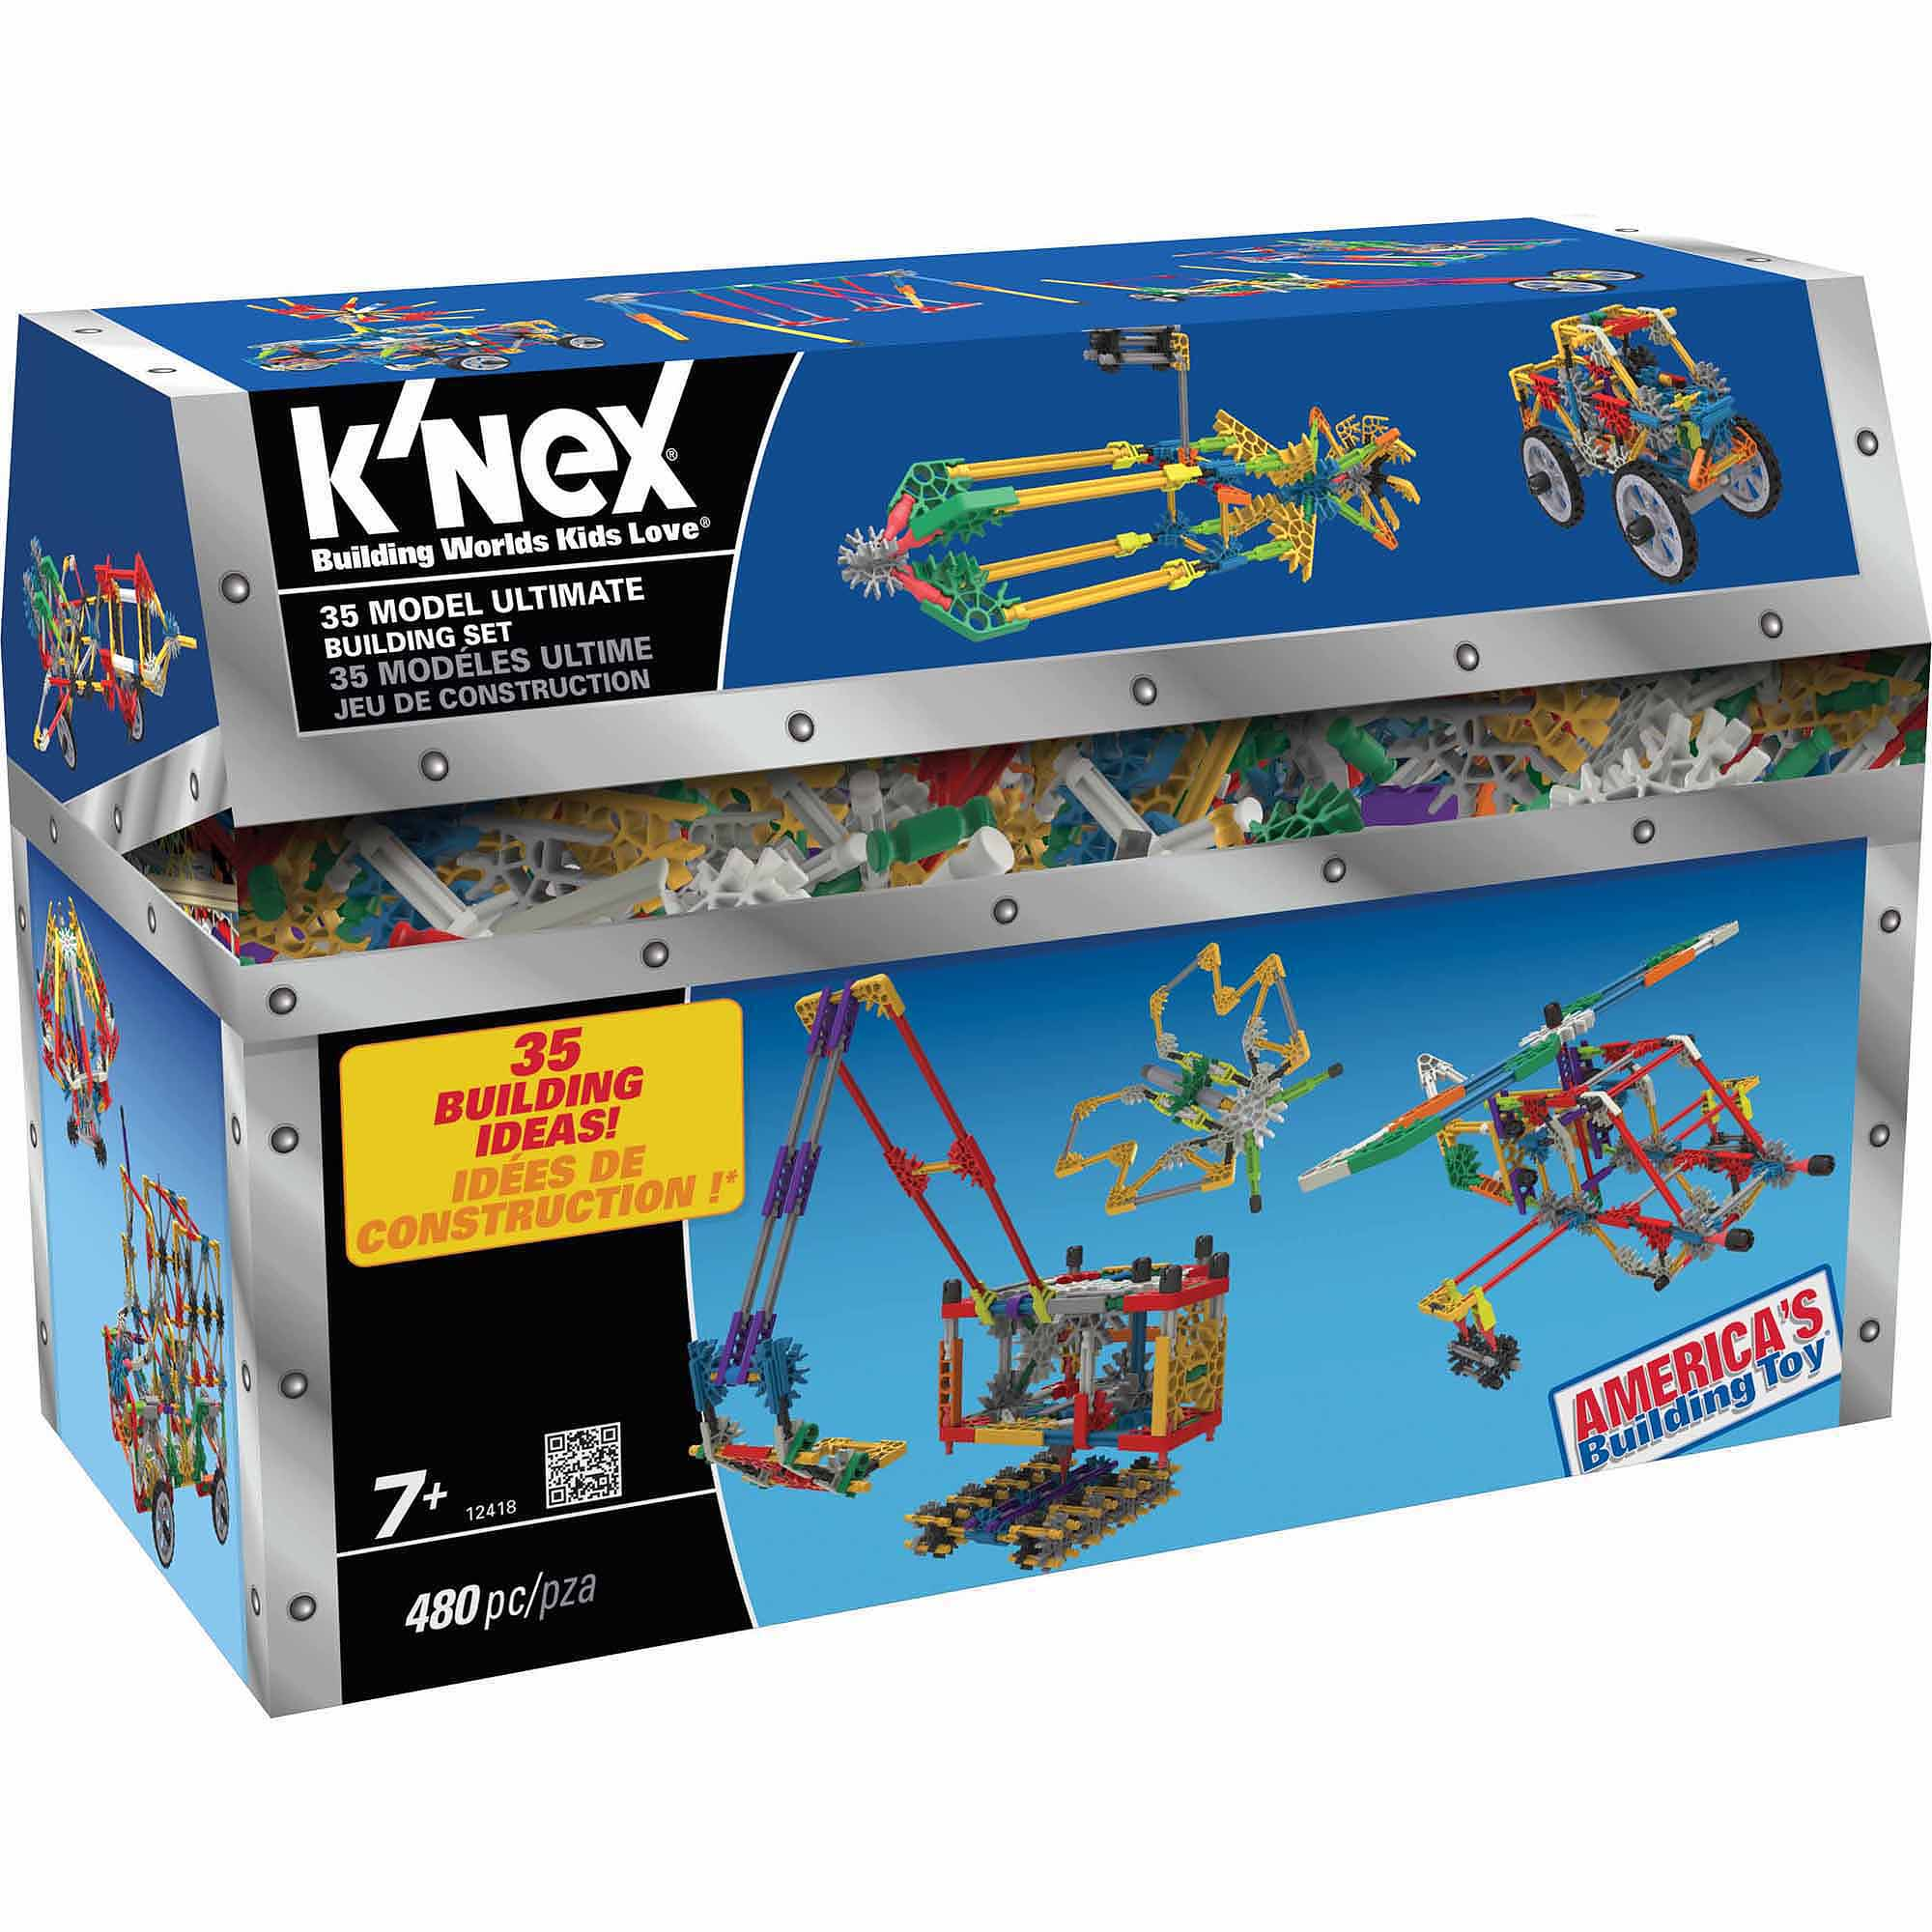 K'NEX ��� 35 Model Building Set ��� 480 Pieces ��� For Ages 7  Construction Education Toy